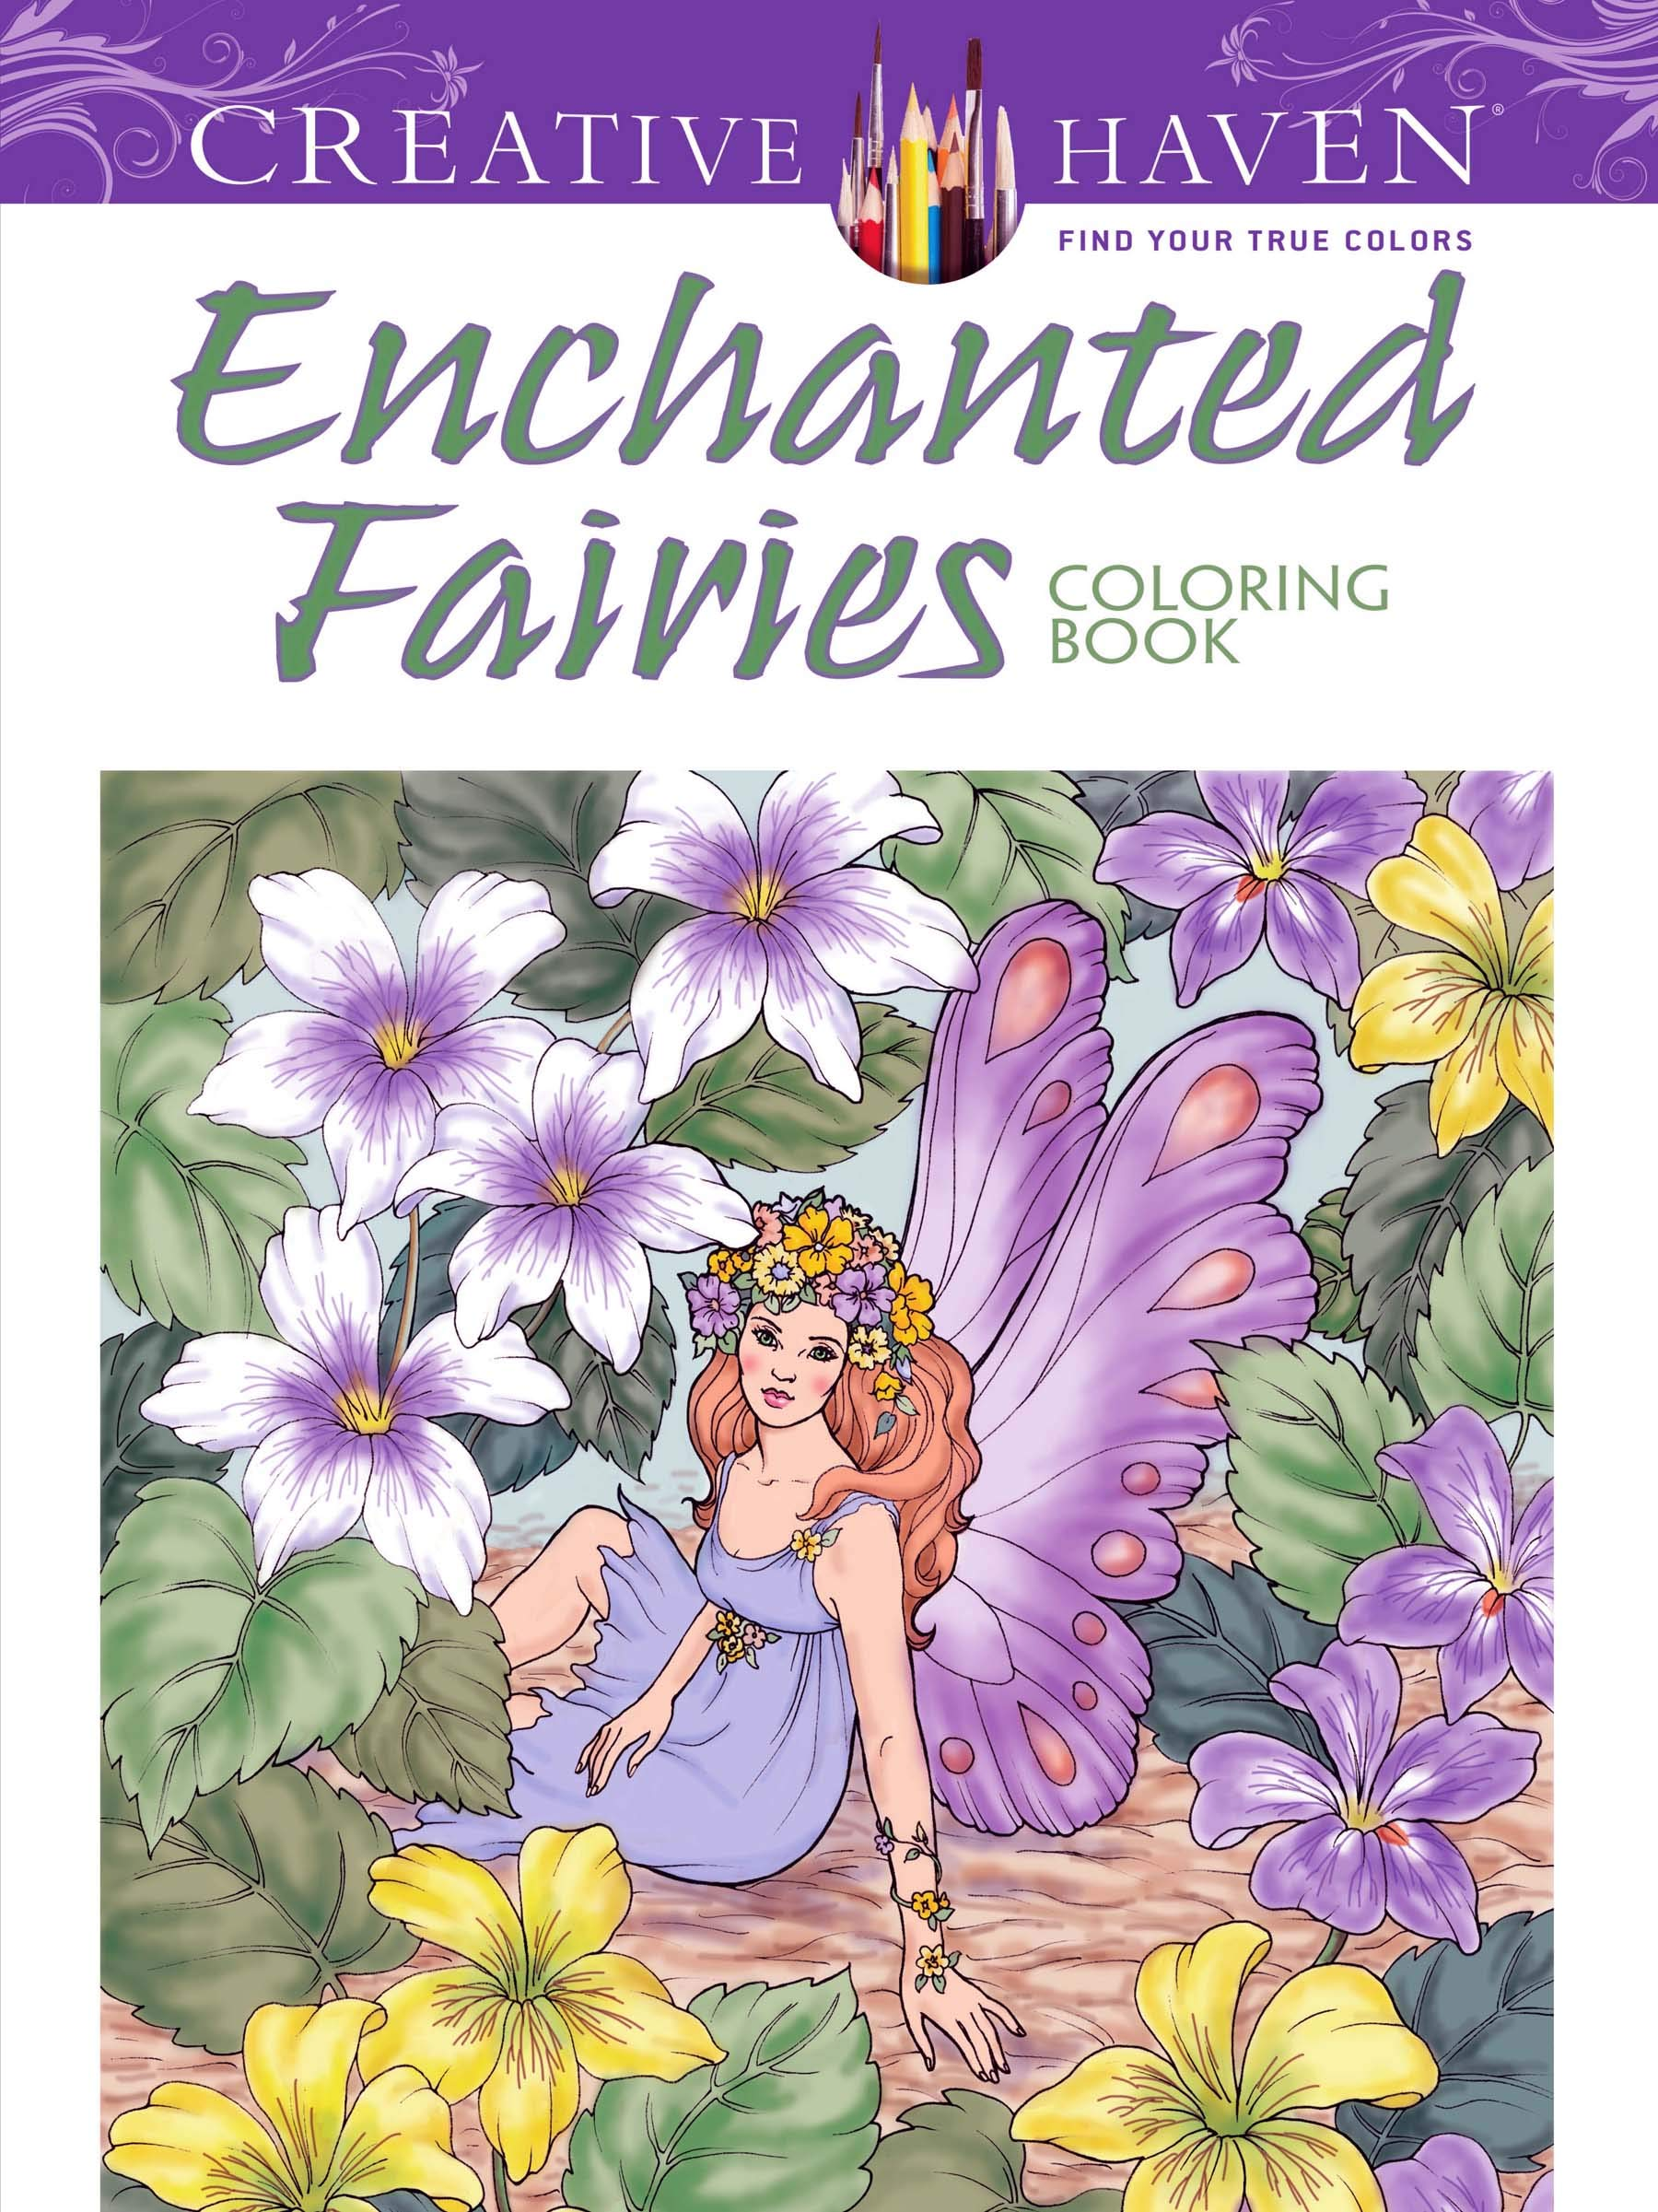 Image for Creative Haven Enchanted Fairies Coloring Book (Creative Haven Coloring Books)